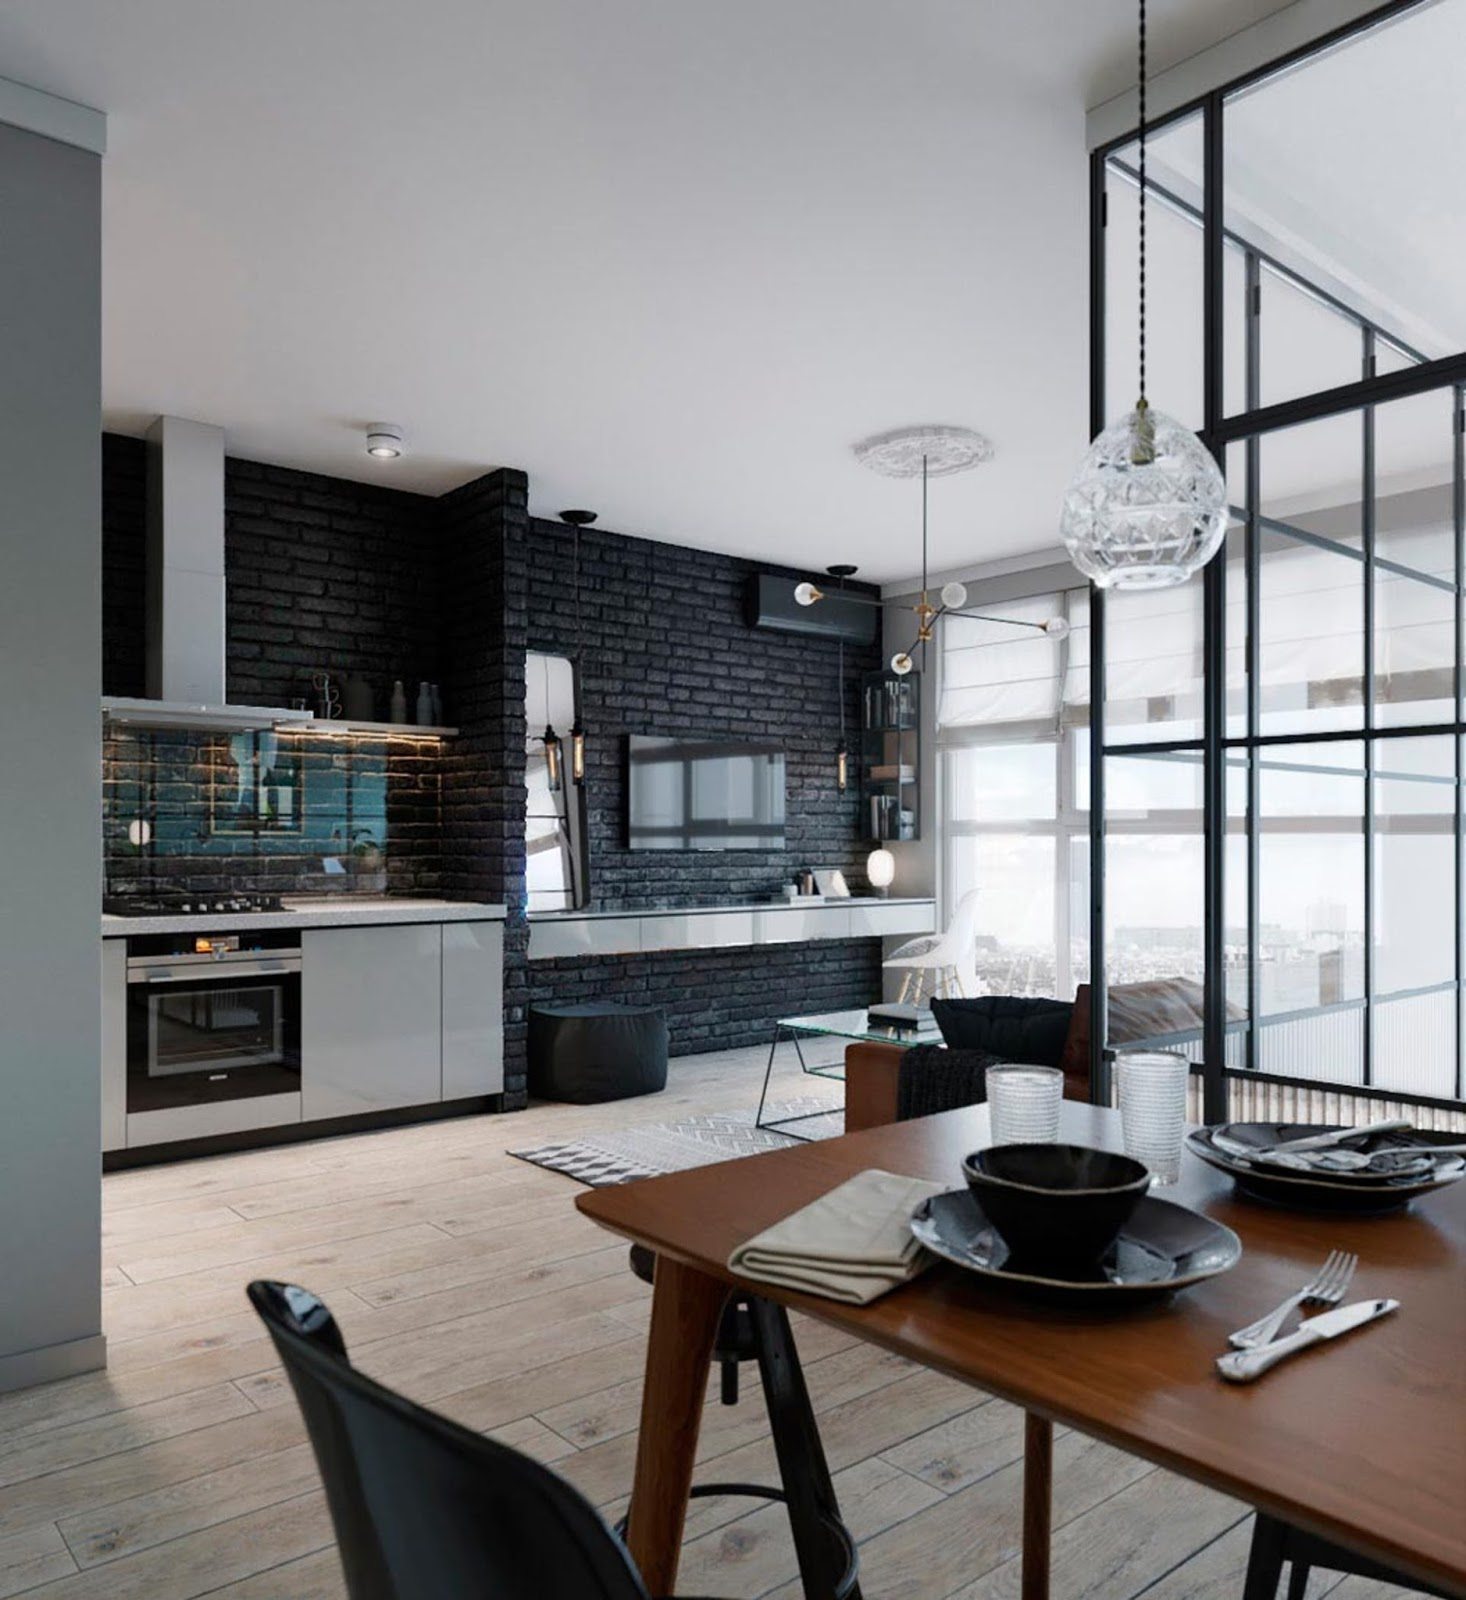 small loft interior with black kitchen and large windows